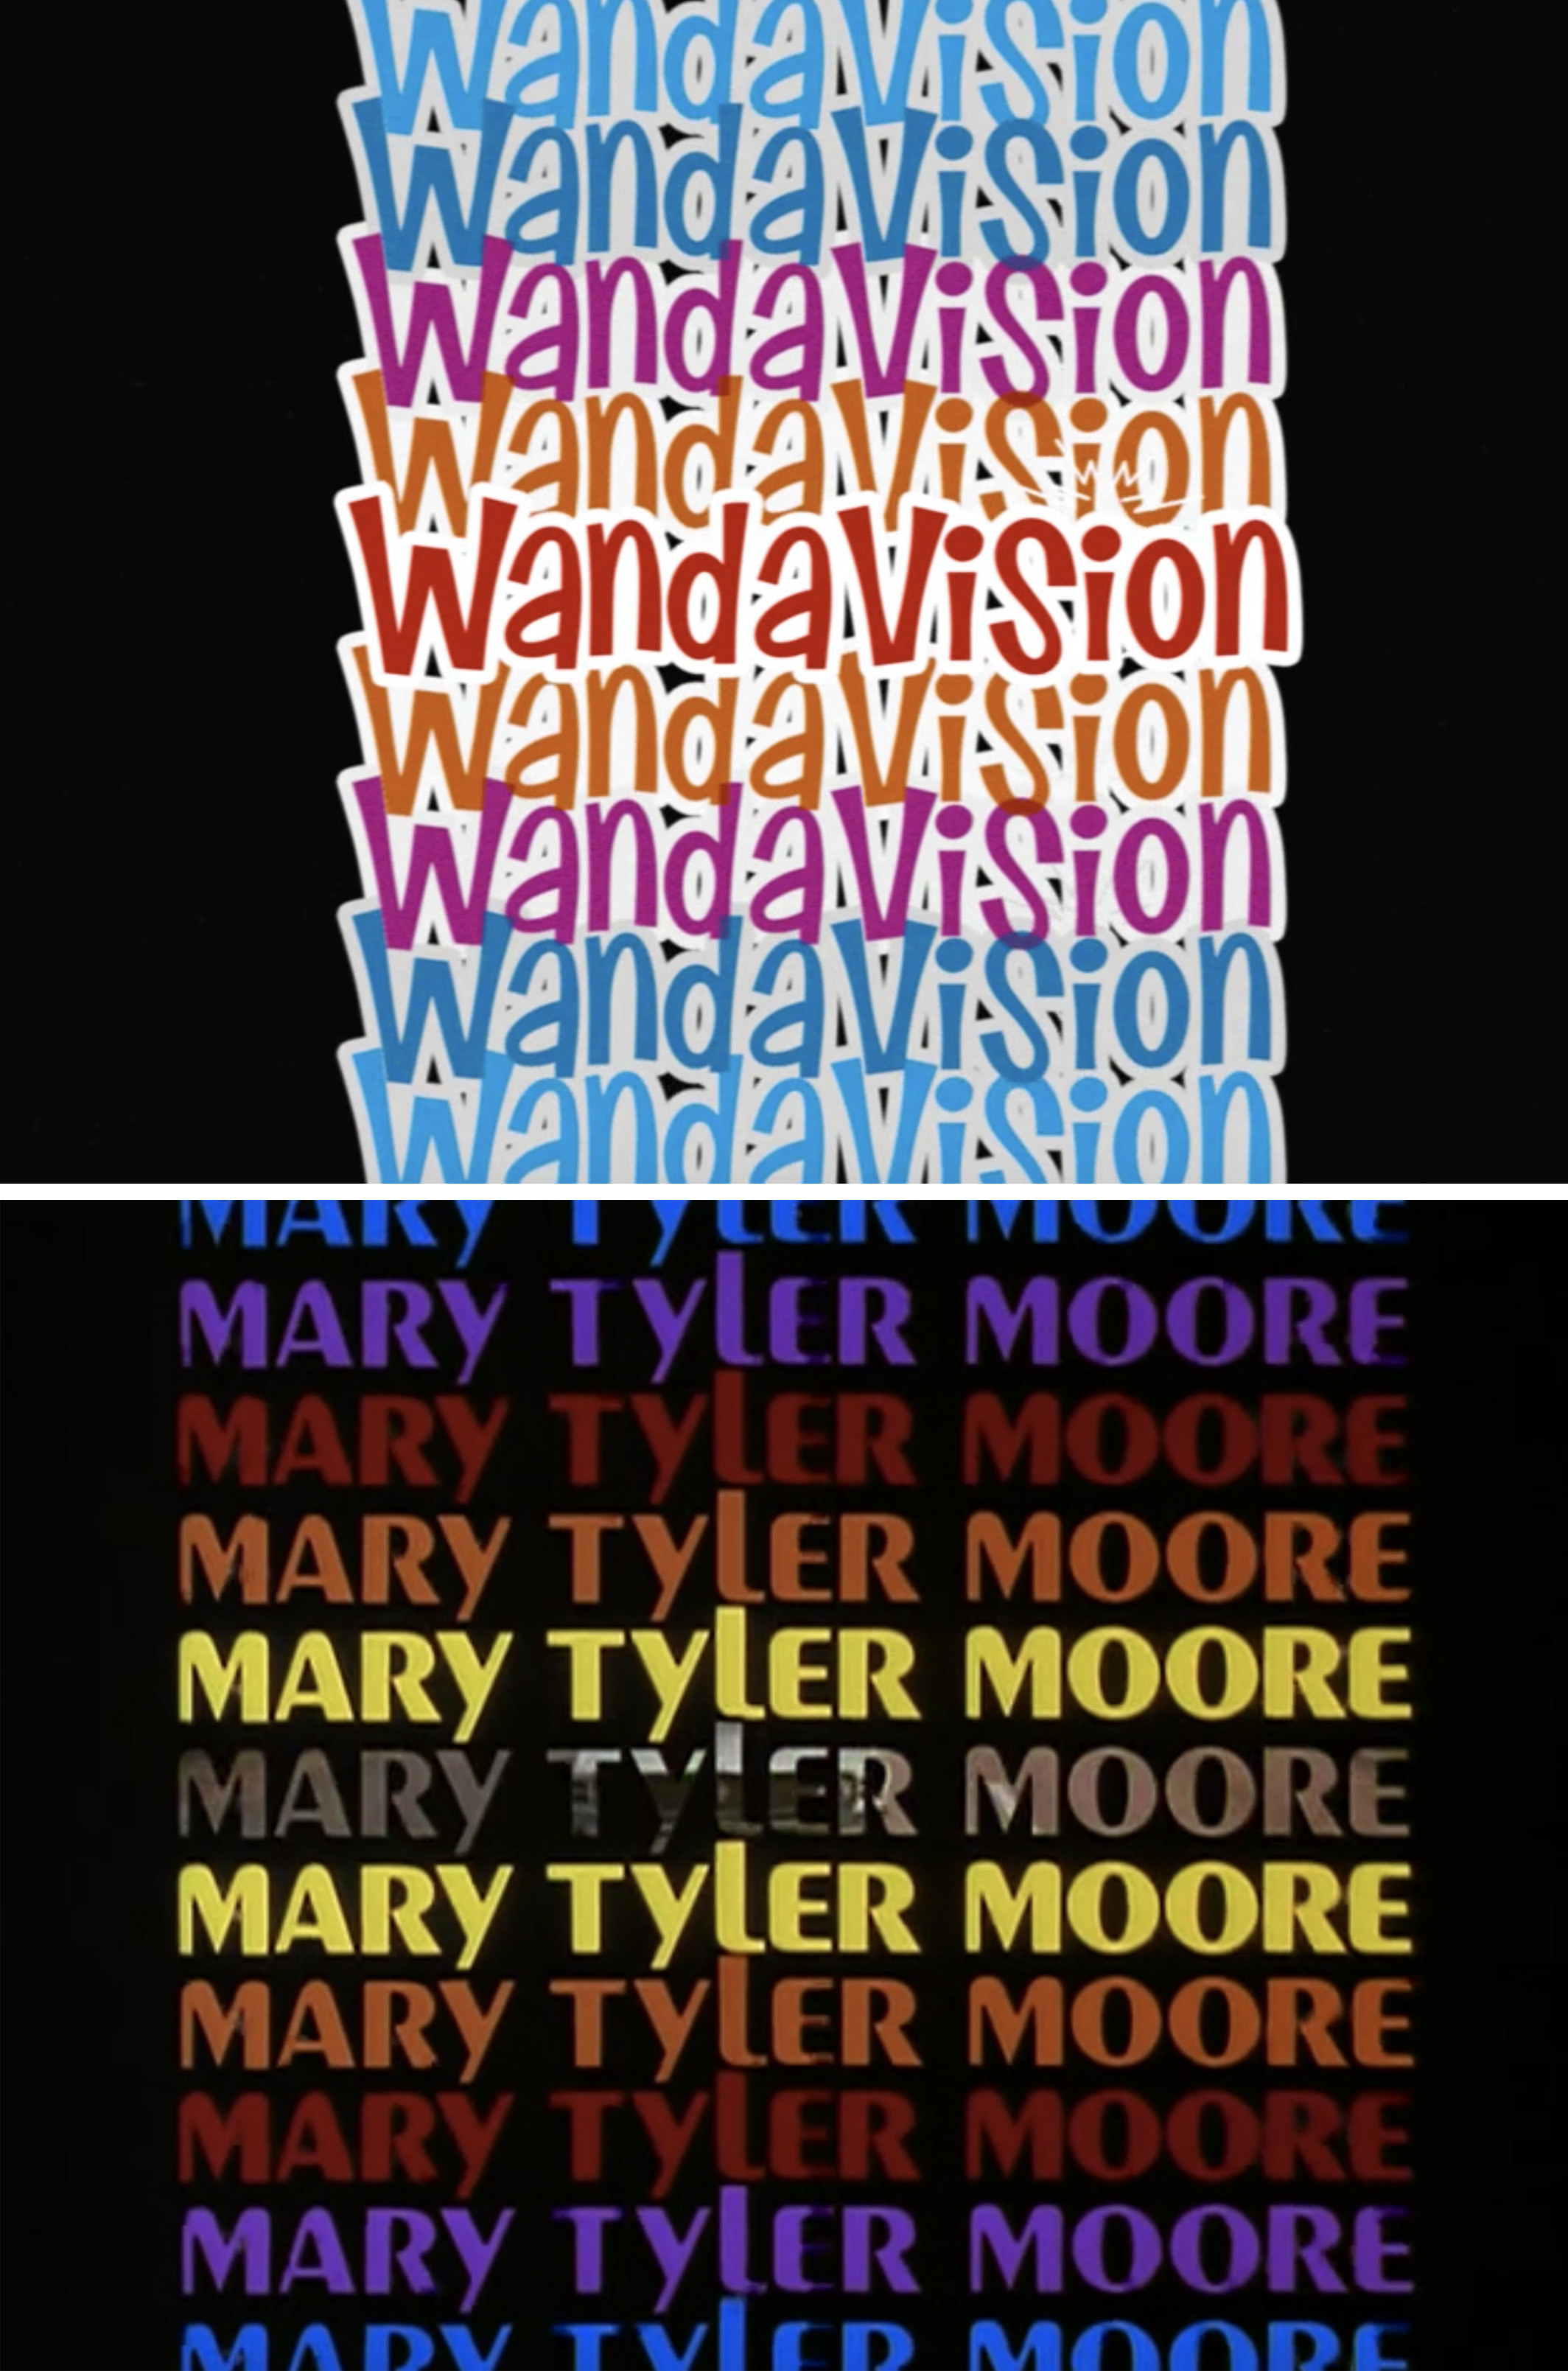 The colorful WandaVision credits compared to the colorful Mary Tyler Moore opening credits